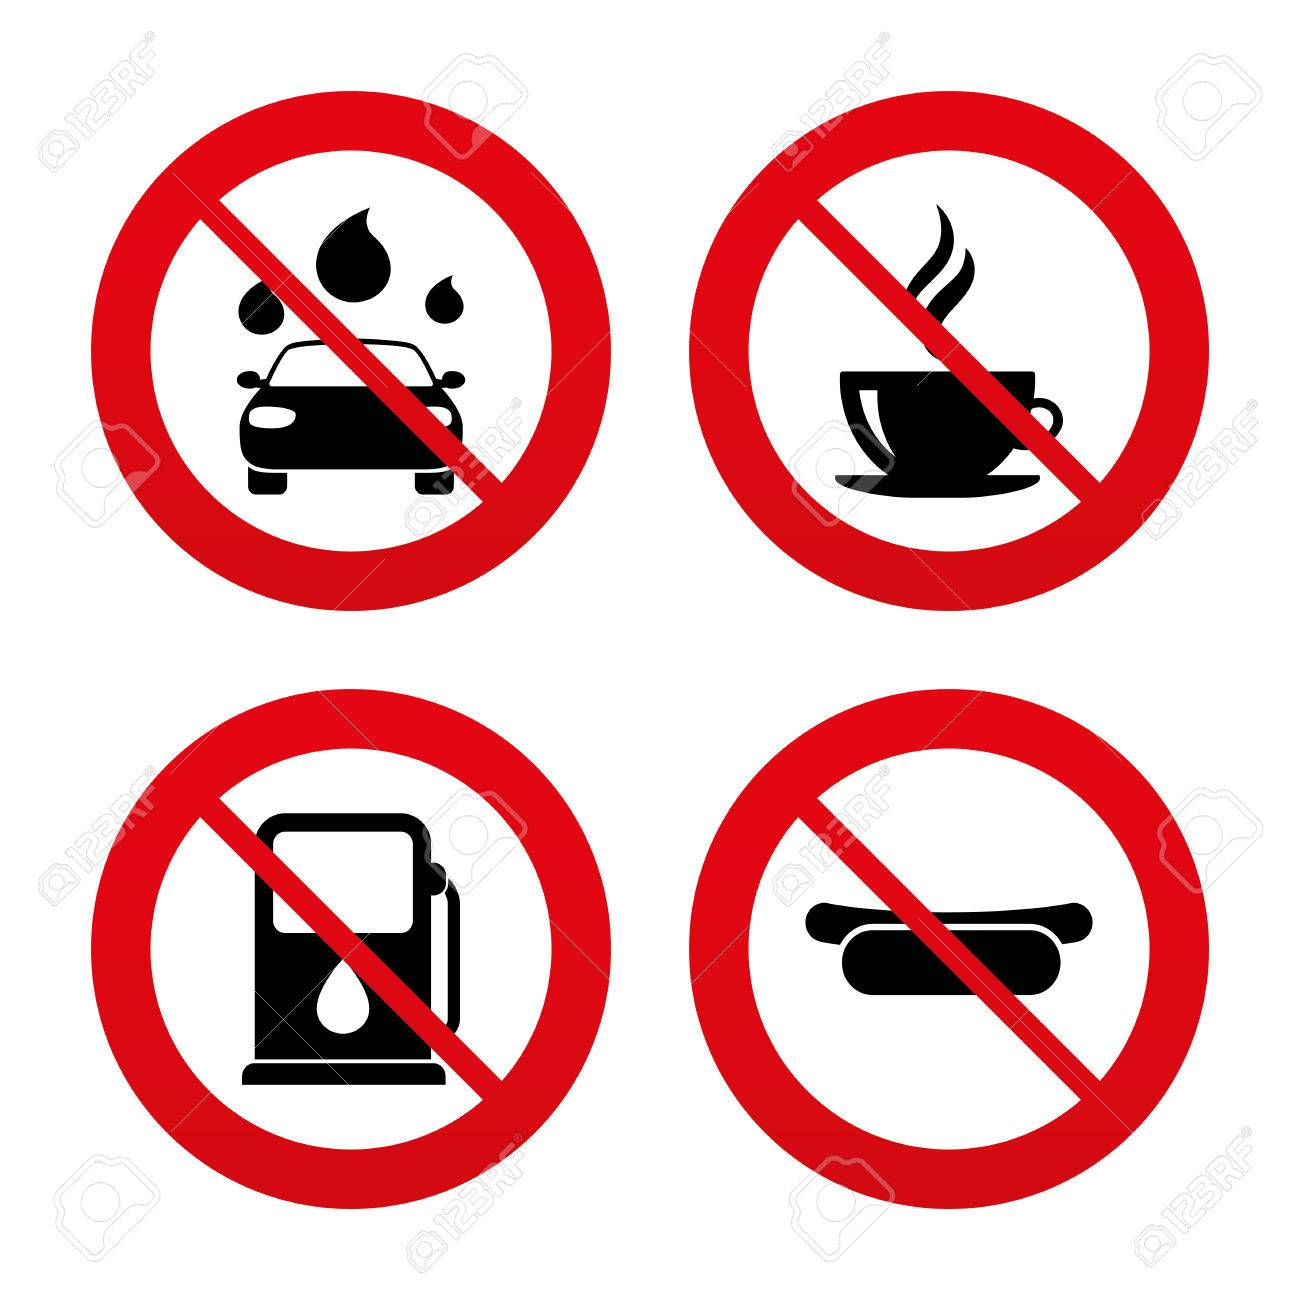 No ban or stop signs petrol or gas station services icons no ban or stop signs petrol or gas station services icons automated car biocorpaavc